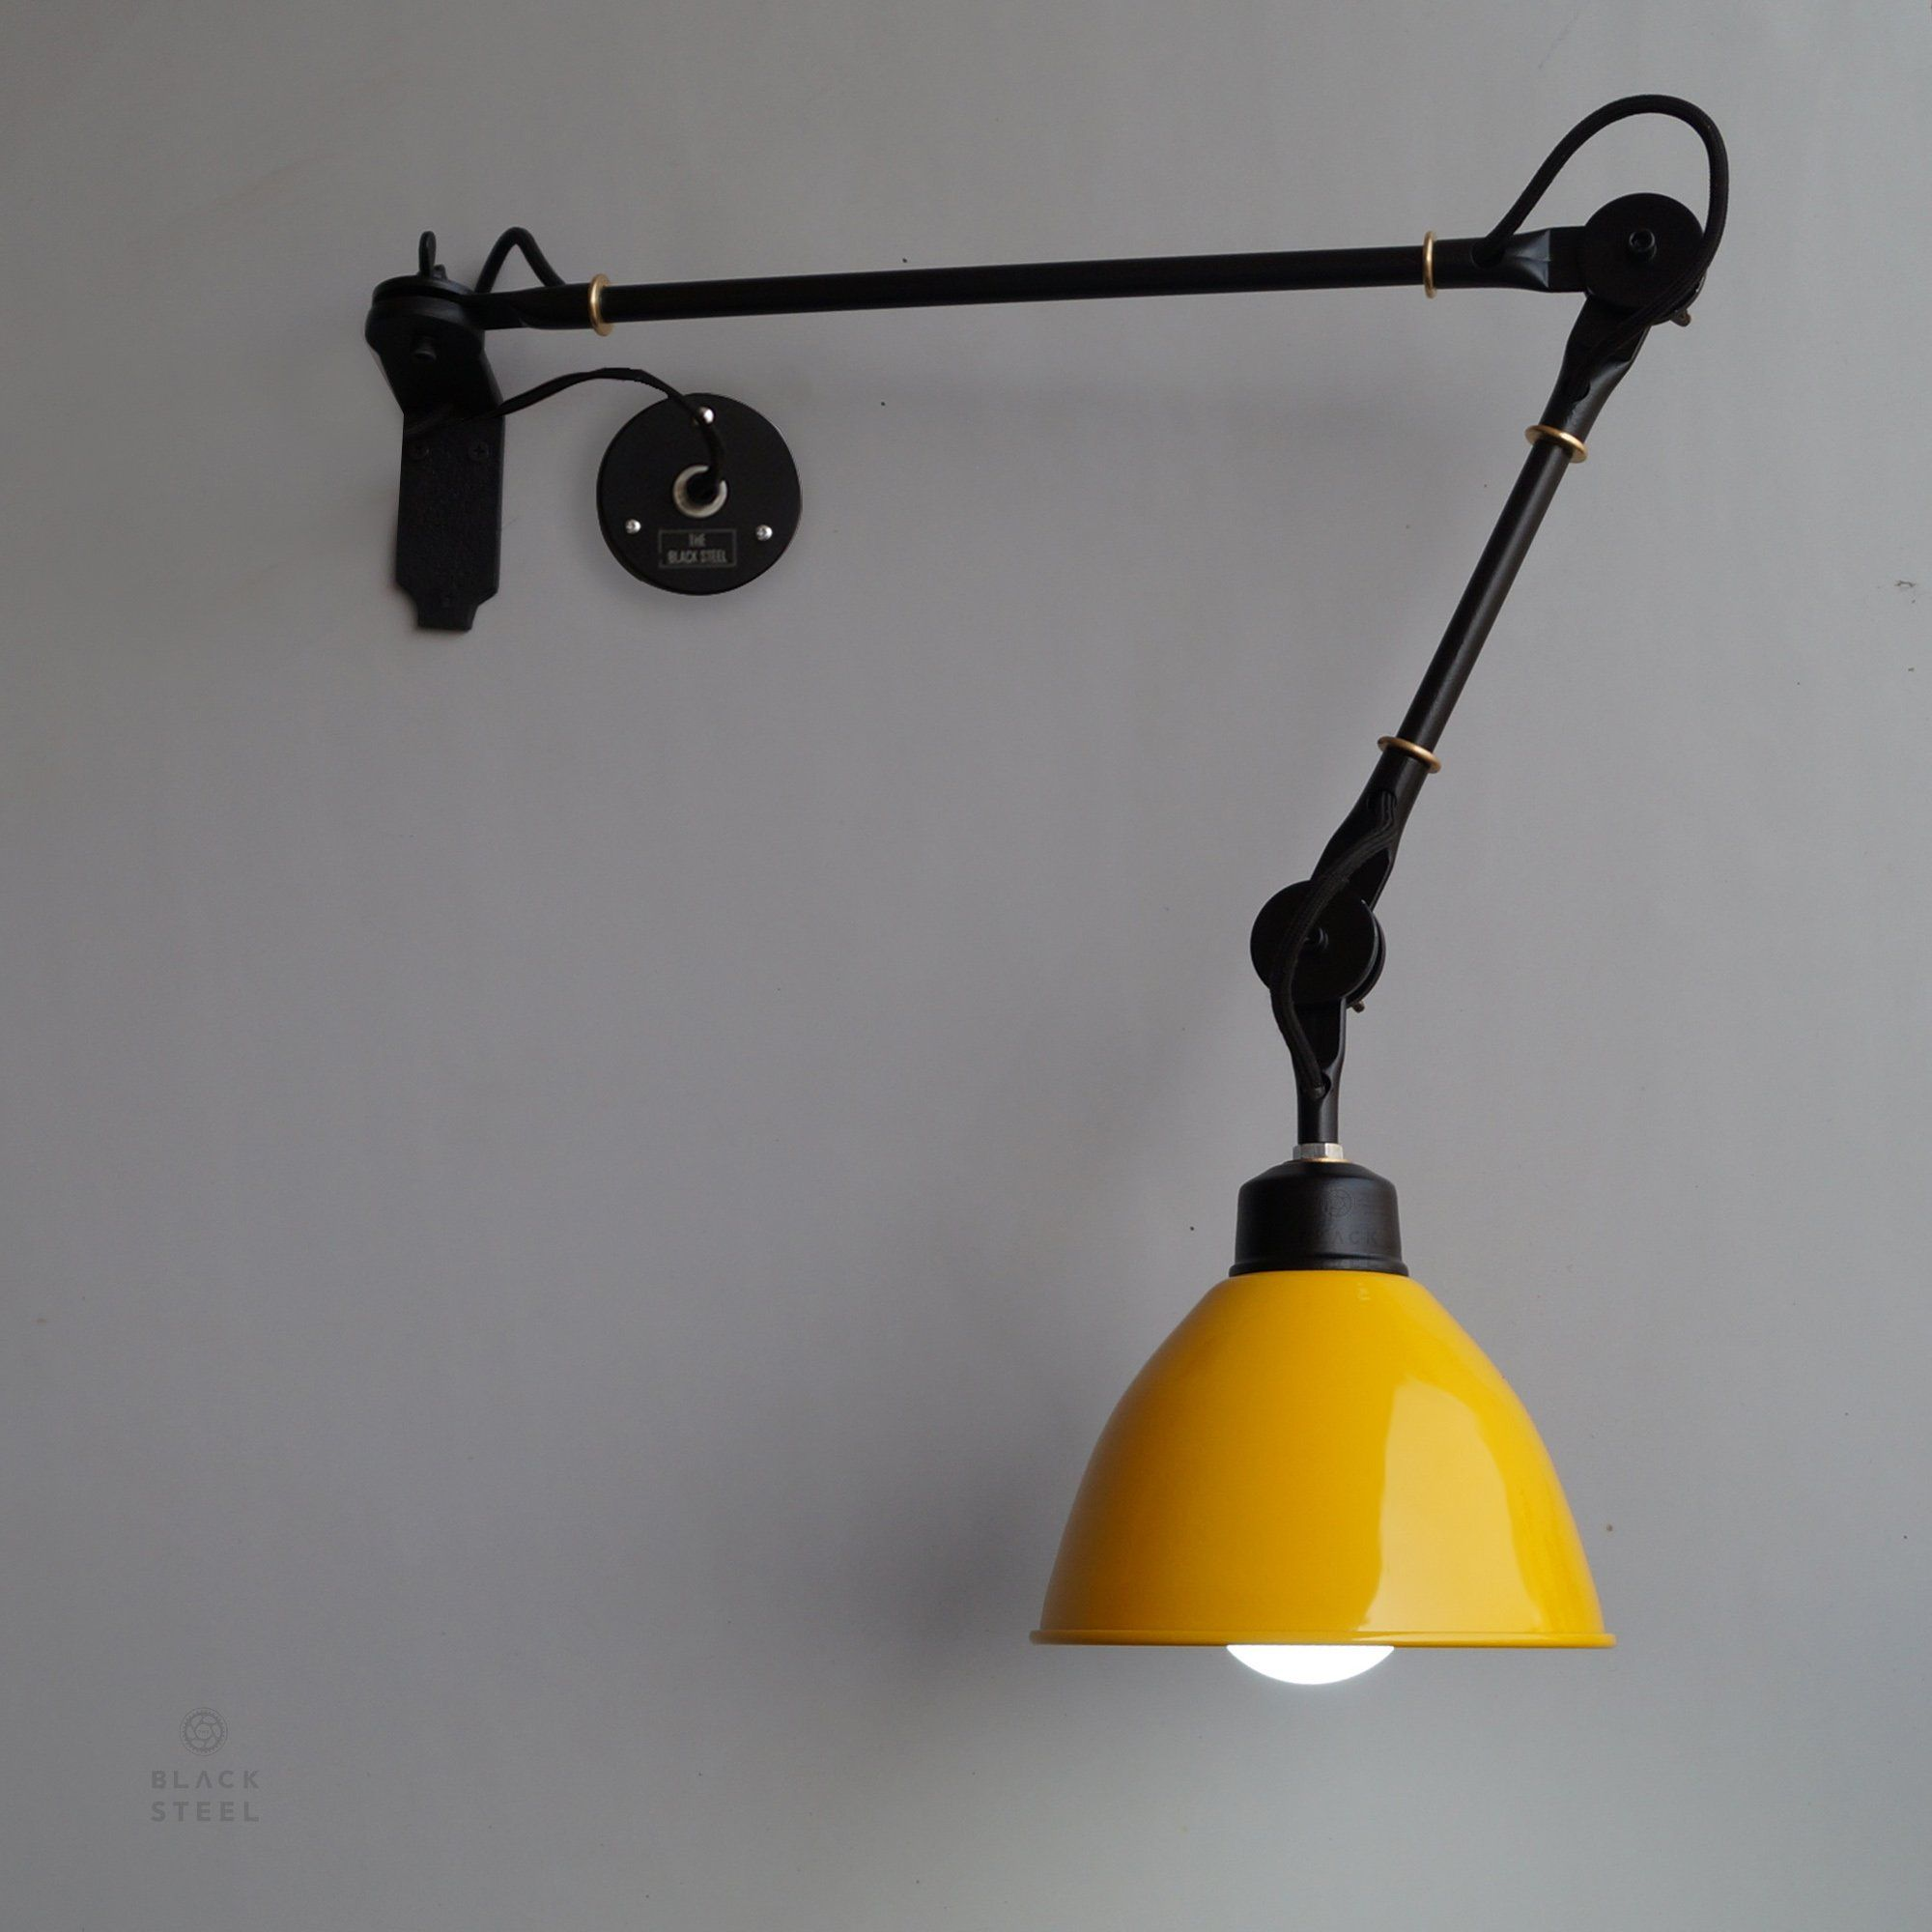 Shop Yellow Wall Lamp Industrial Swing Arm Wall Mounted Light Online Industrial Wall Lamp Wall Mounted Light Wall Lamp